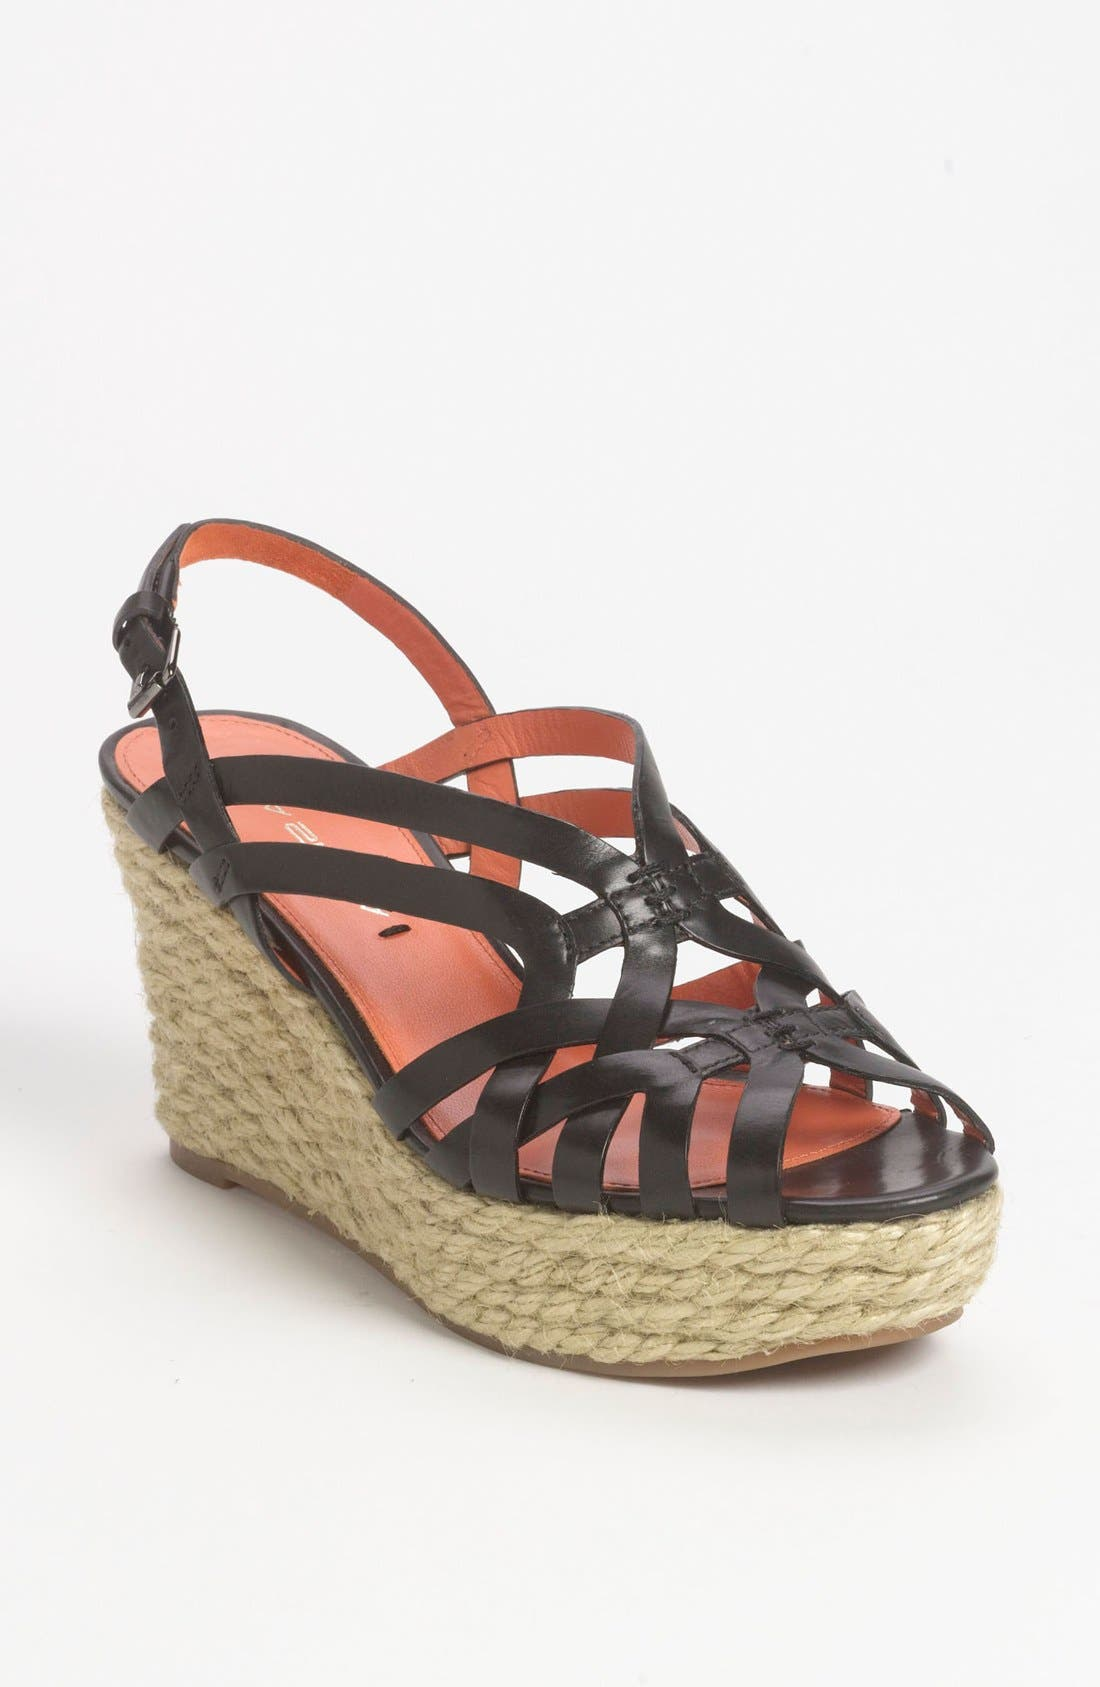 Main Image - Via Spiga 'Mabel' Wedge Sandal (Special Purchase)